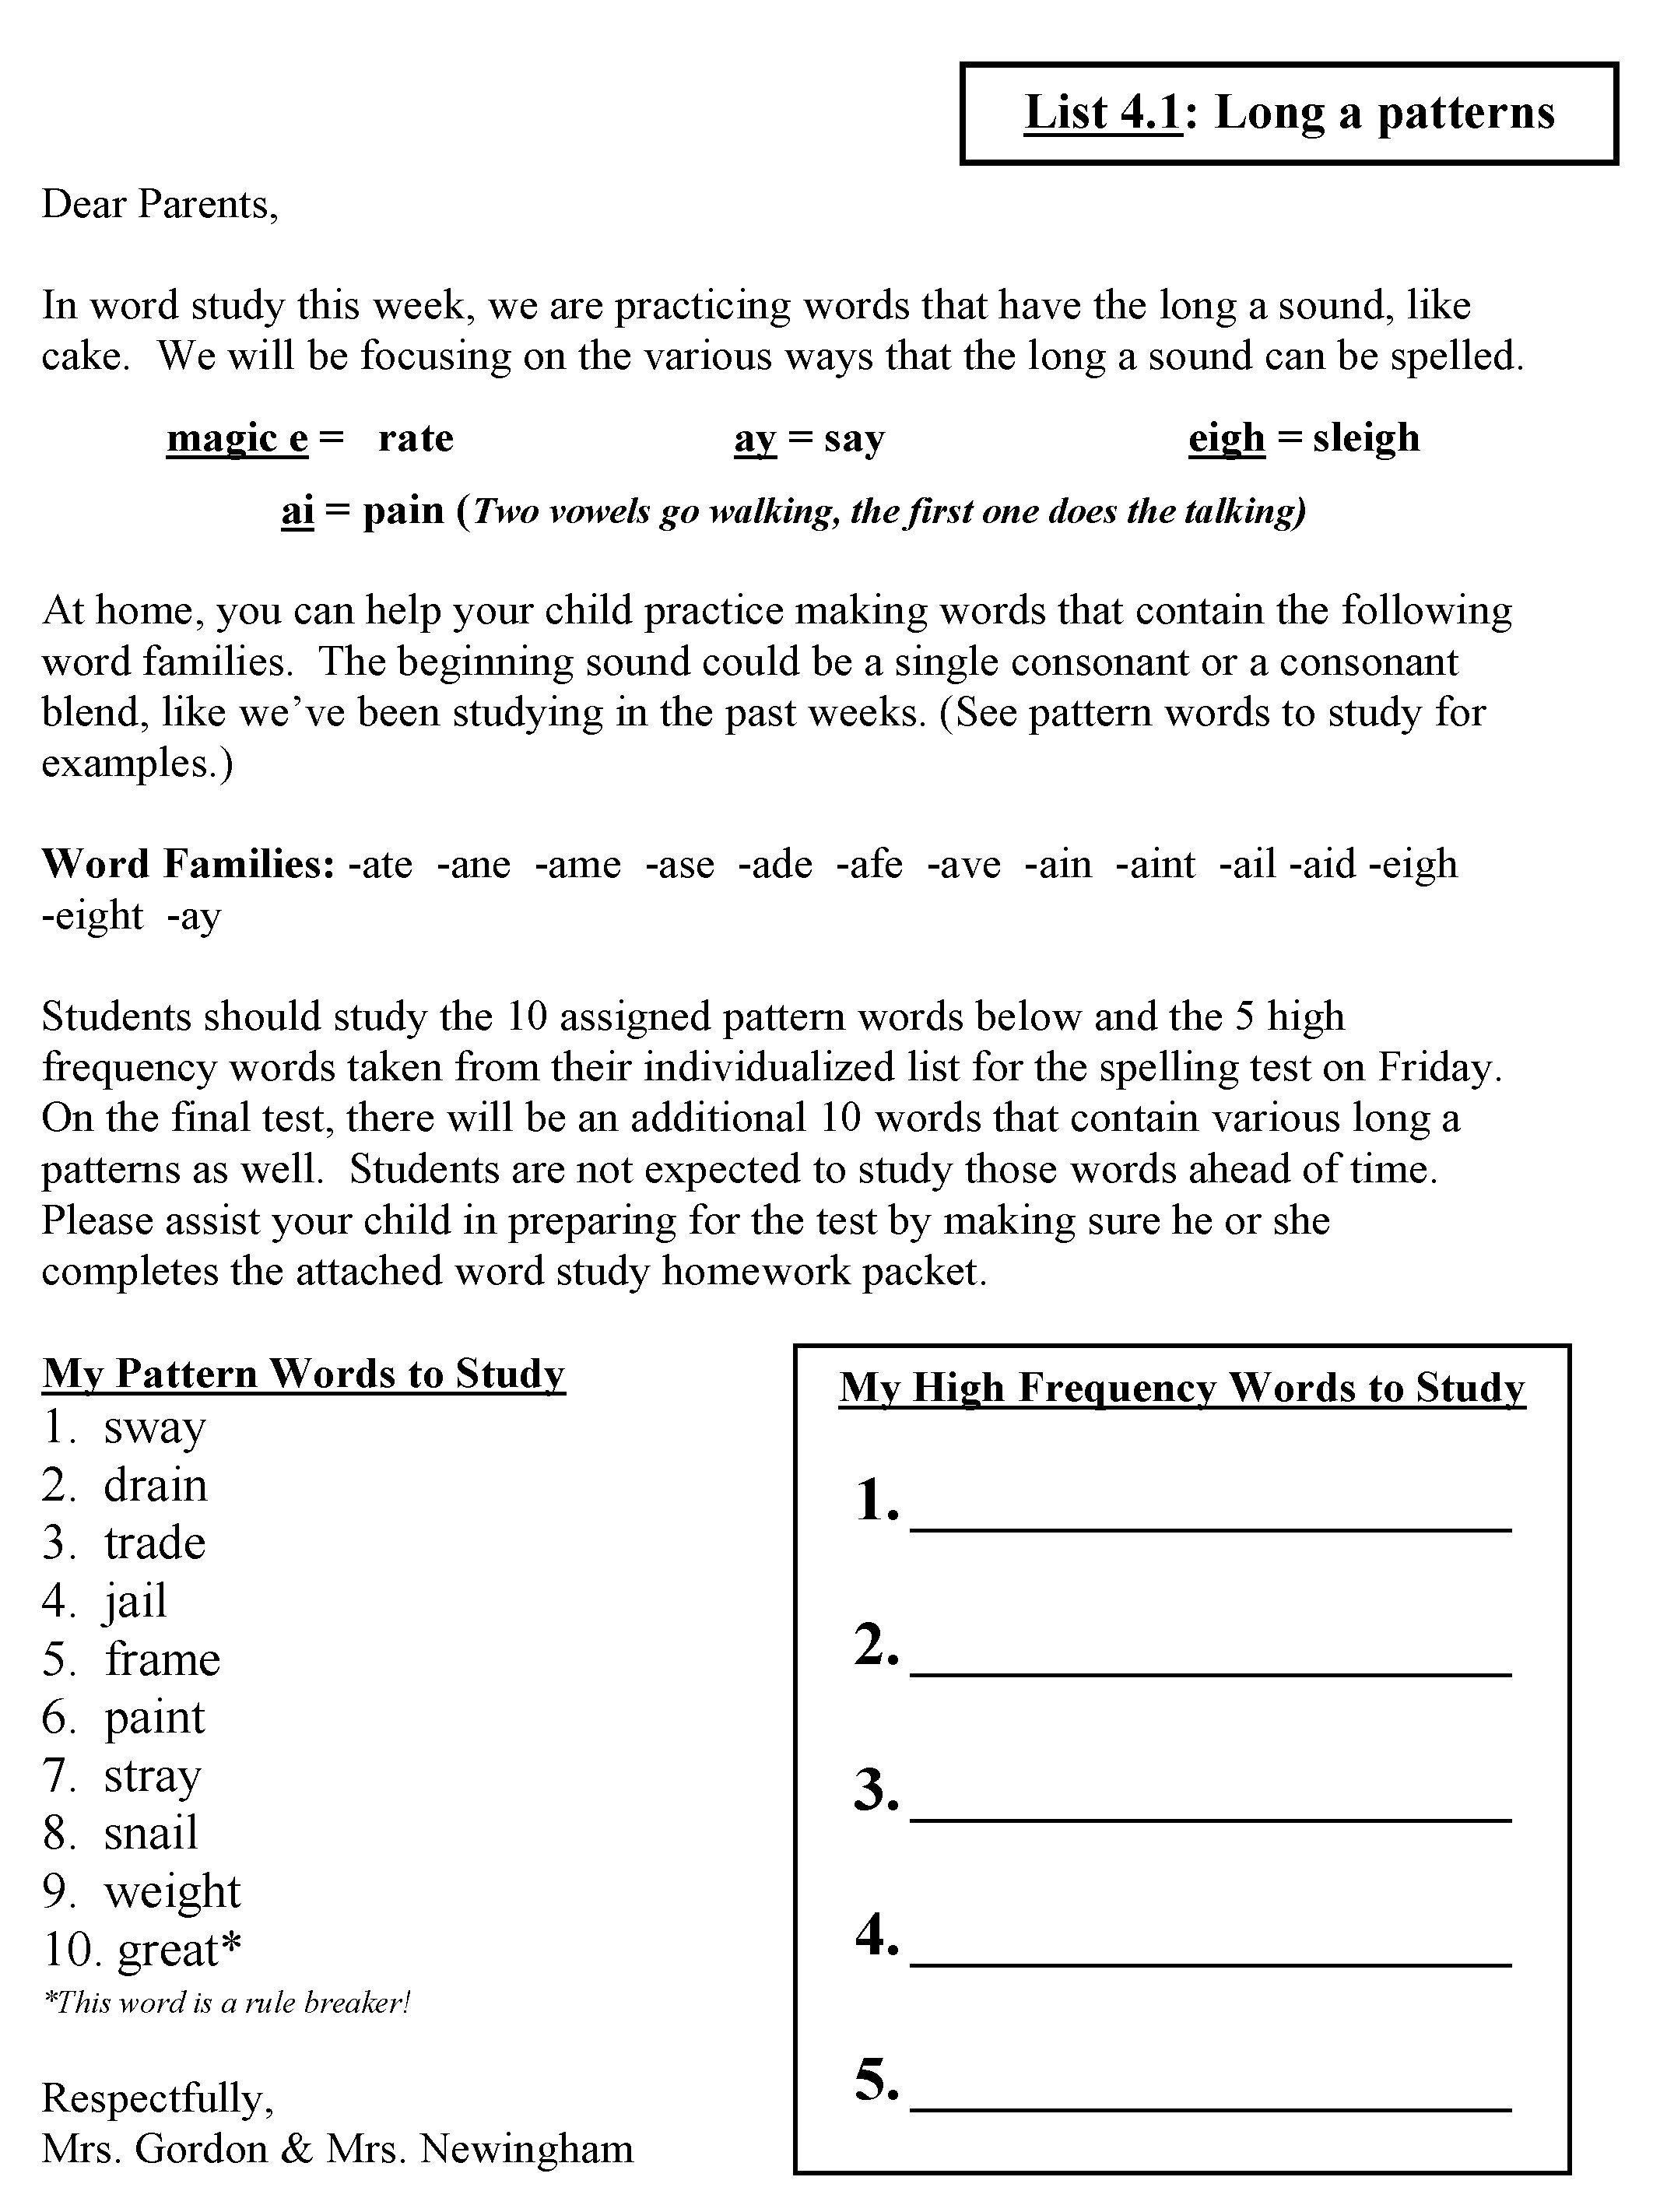 Words Their Way Hw Letter